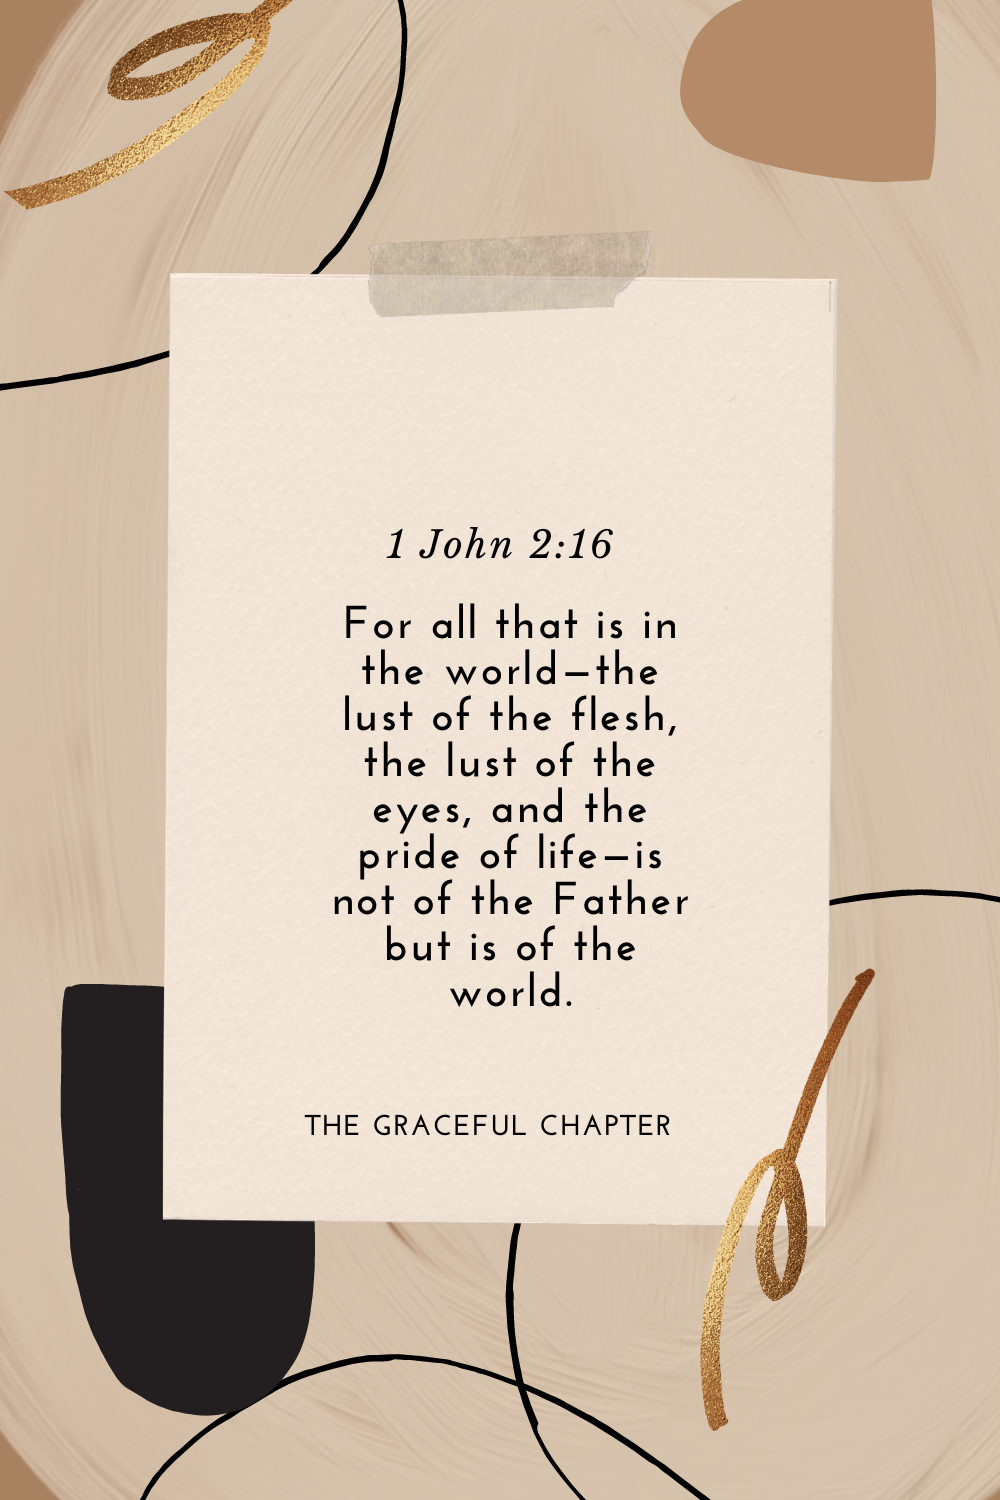 For all that is in the world—the lust of the flesh, the lust of the eyes, and the pride of life—is not of the Father but is of the world. 1 John 2:16